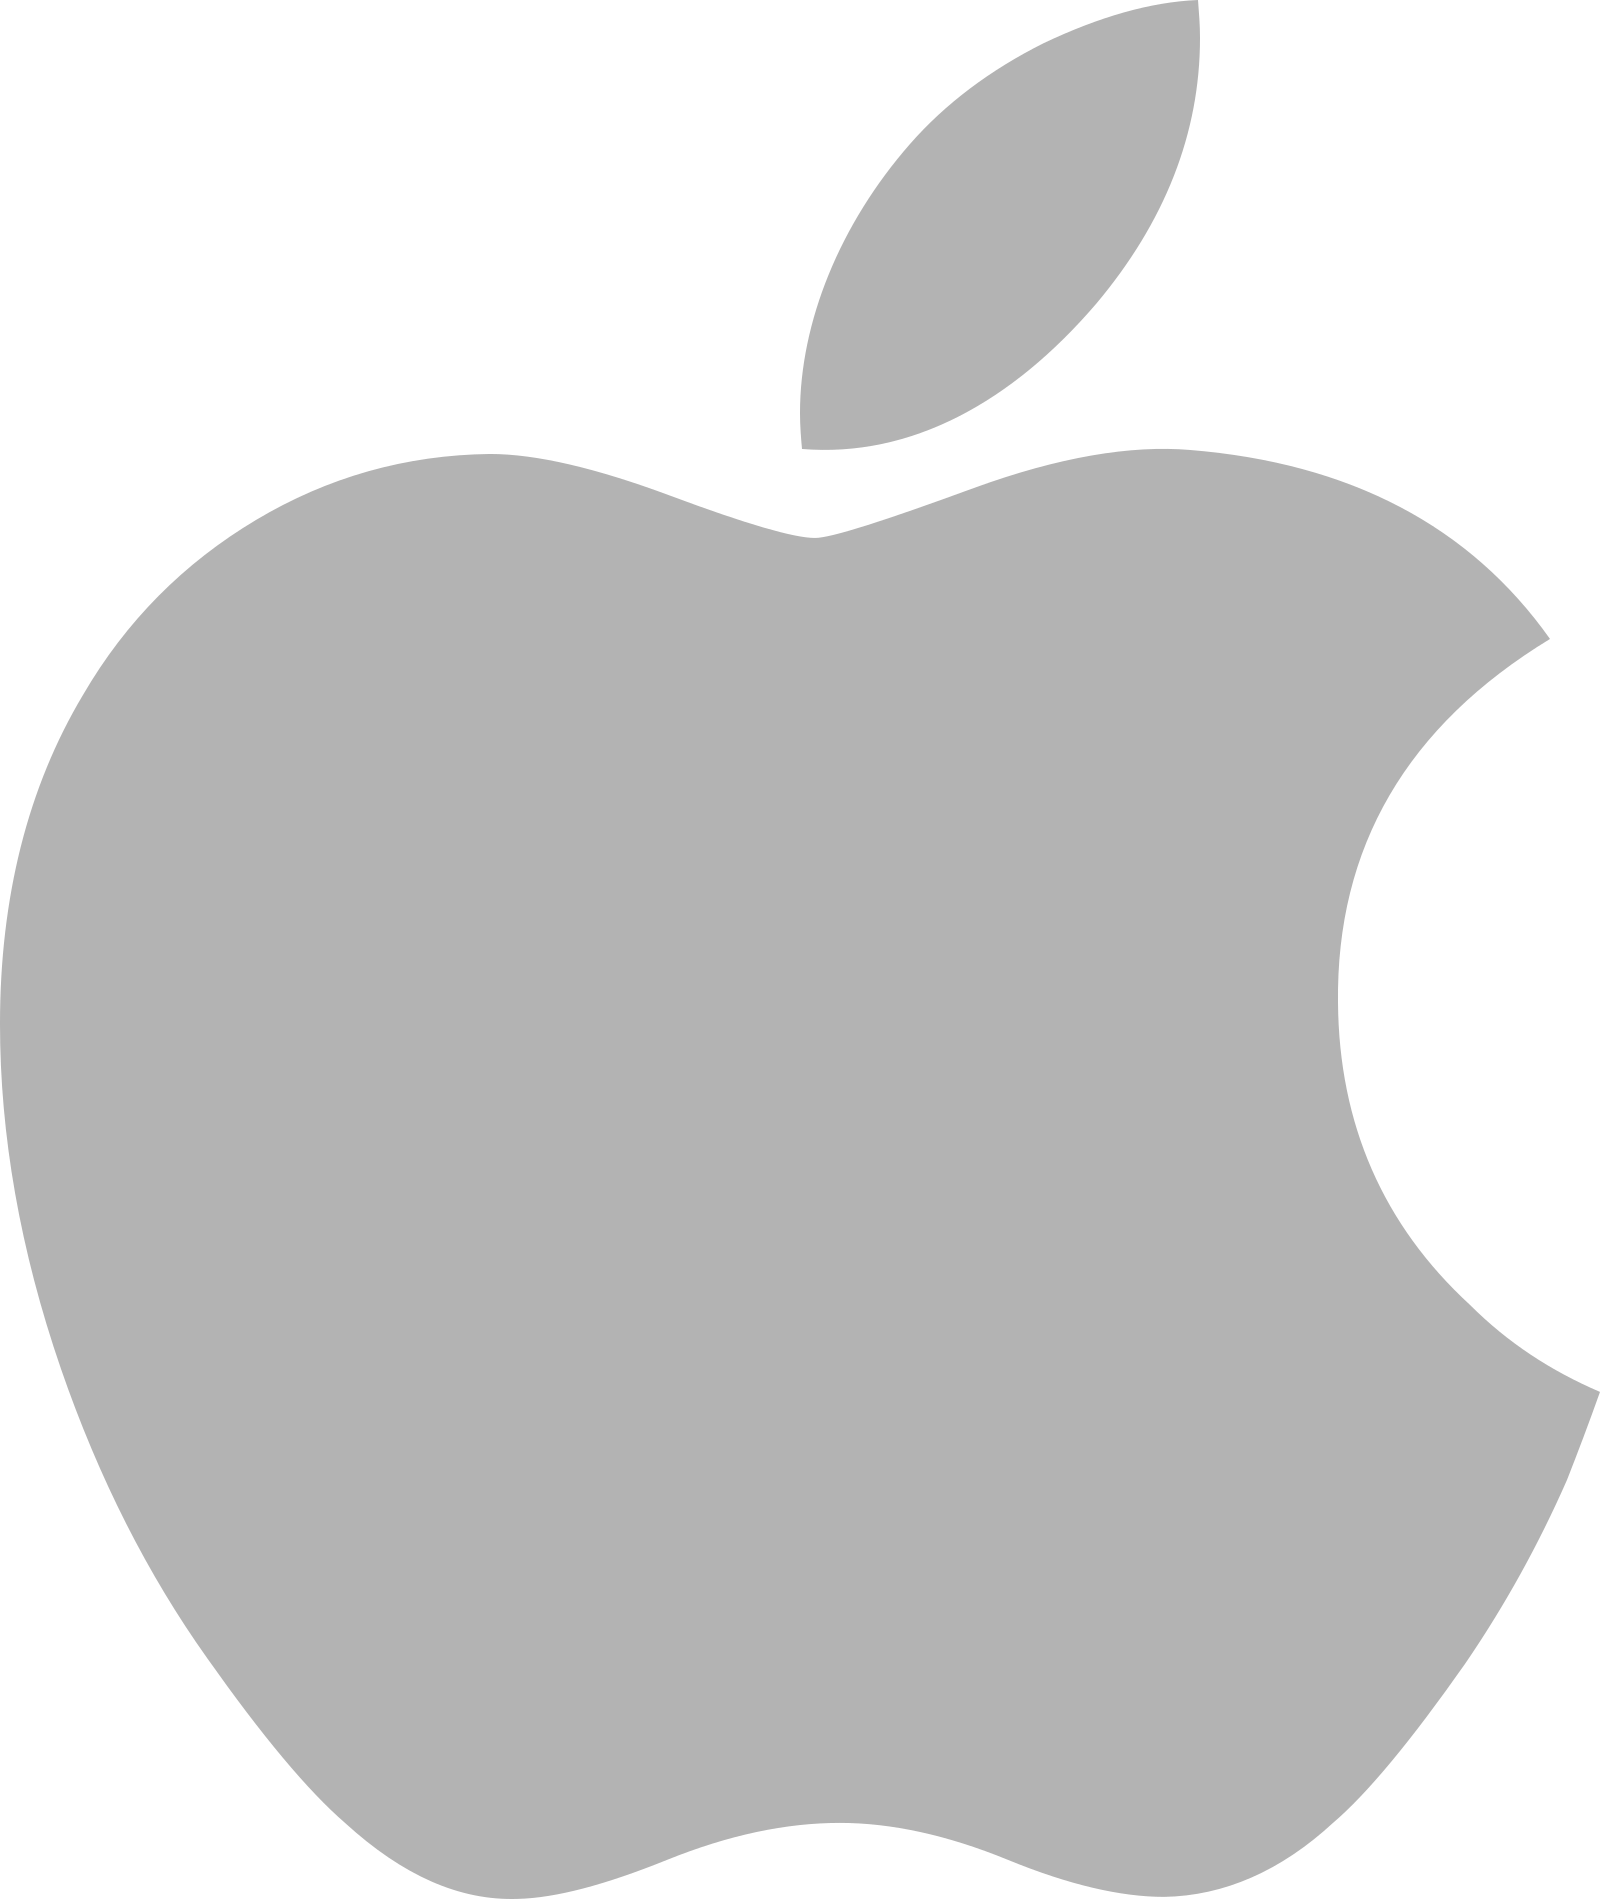 apple logo 4 - Apple Logo